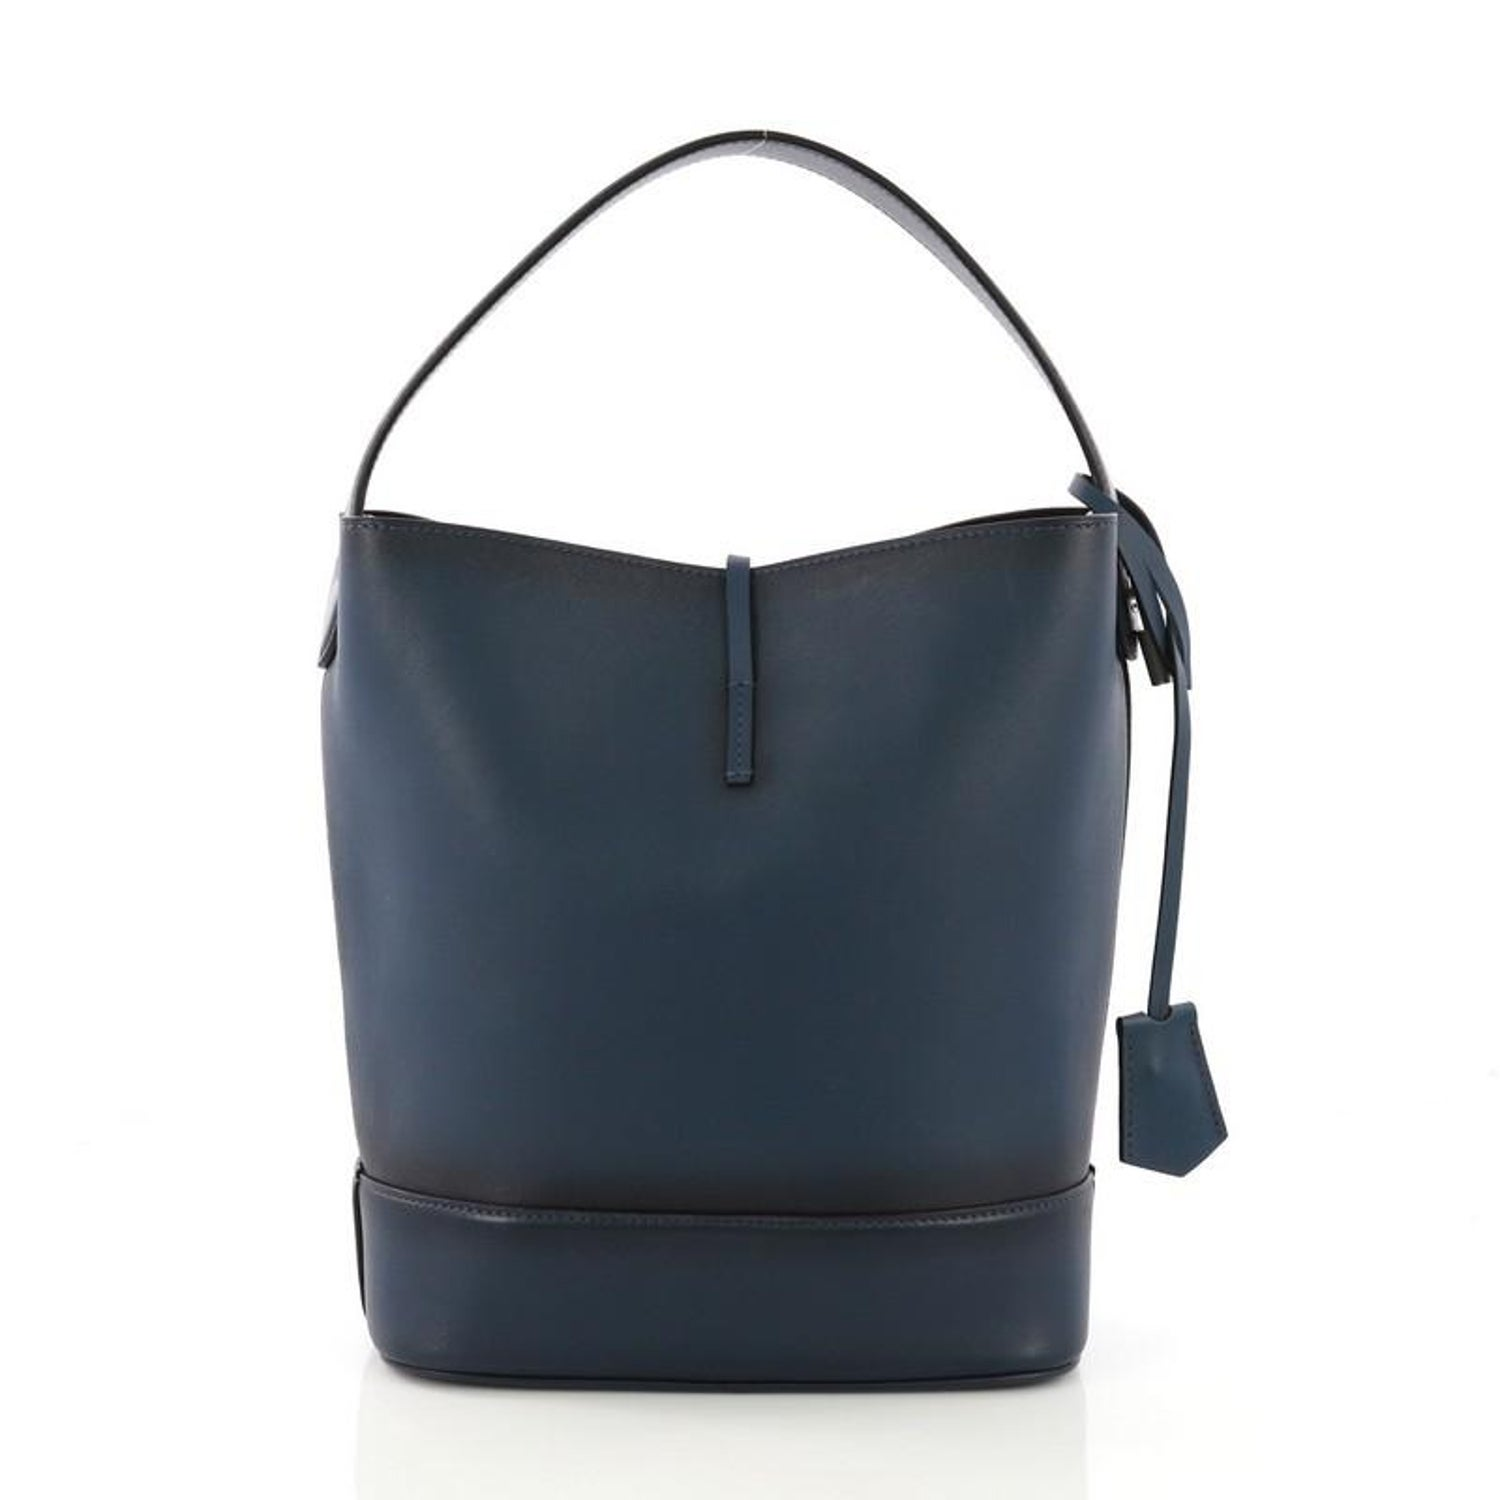 6c7716a2fb41 Louis Vuitton NN14 Cuir Nuance Bucket Bag Leather GM For Sale at 1stdibs